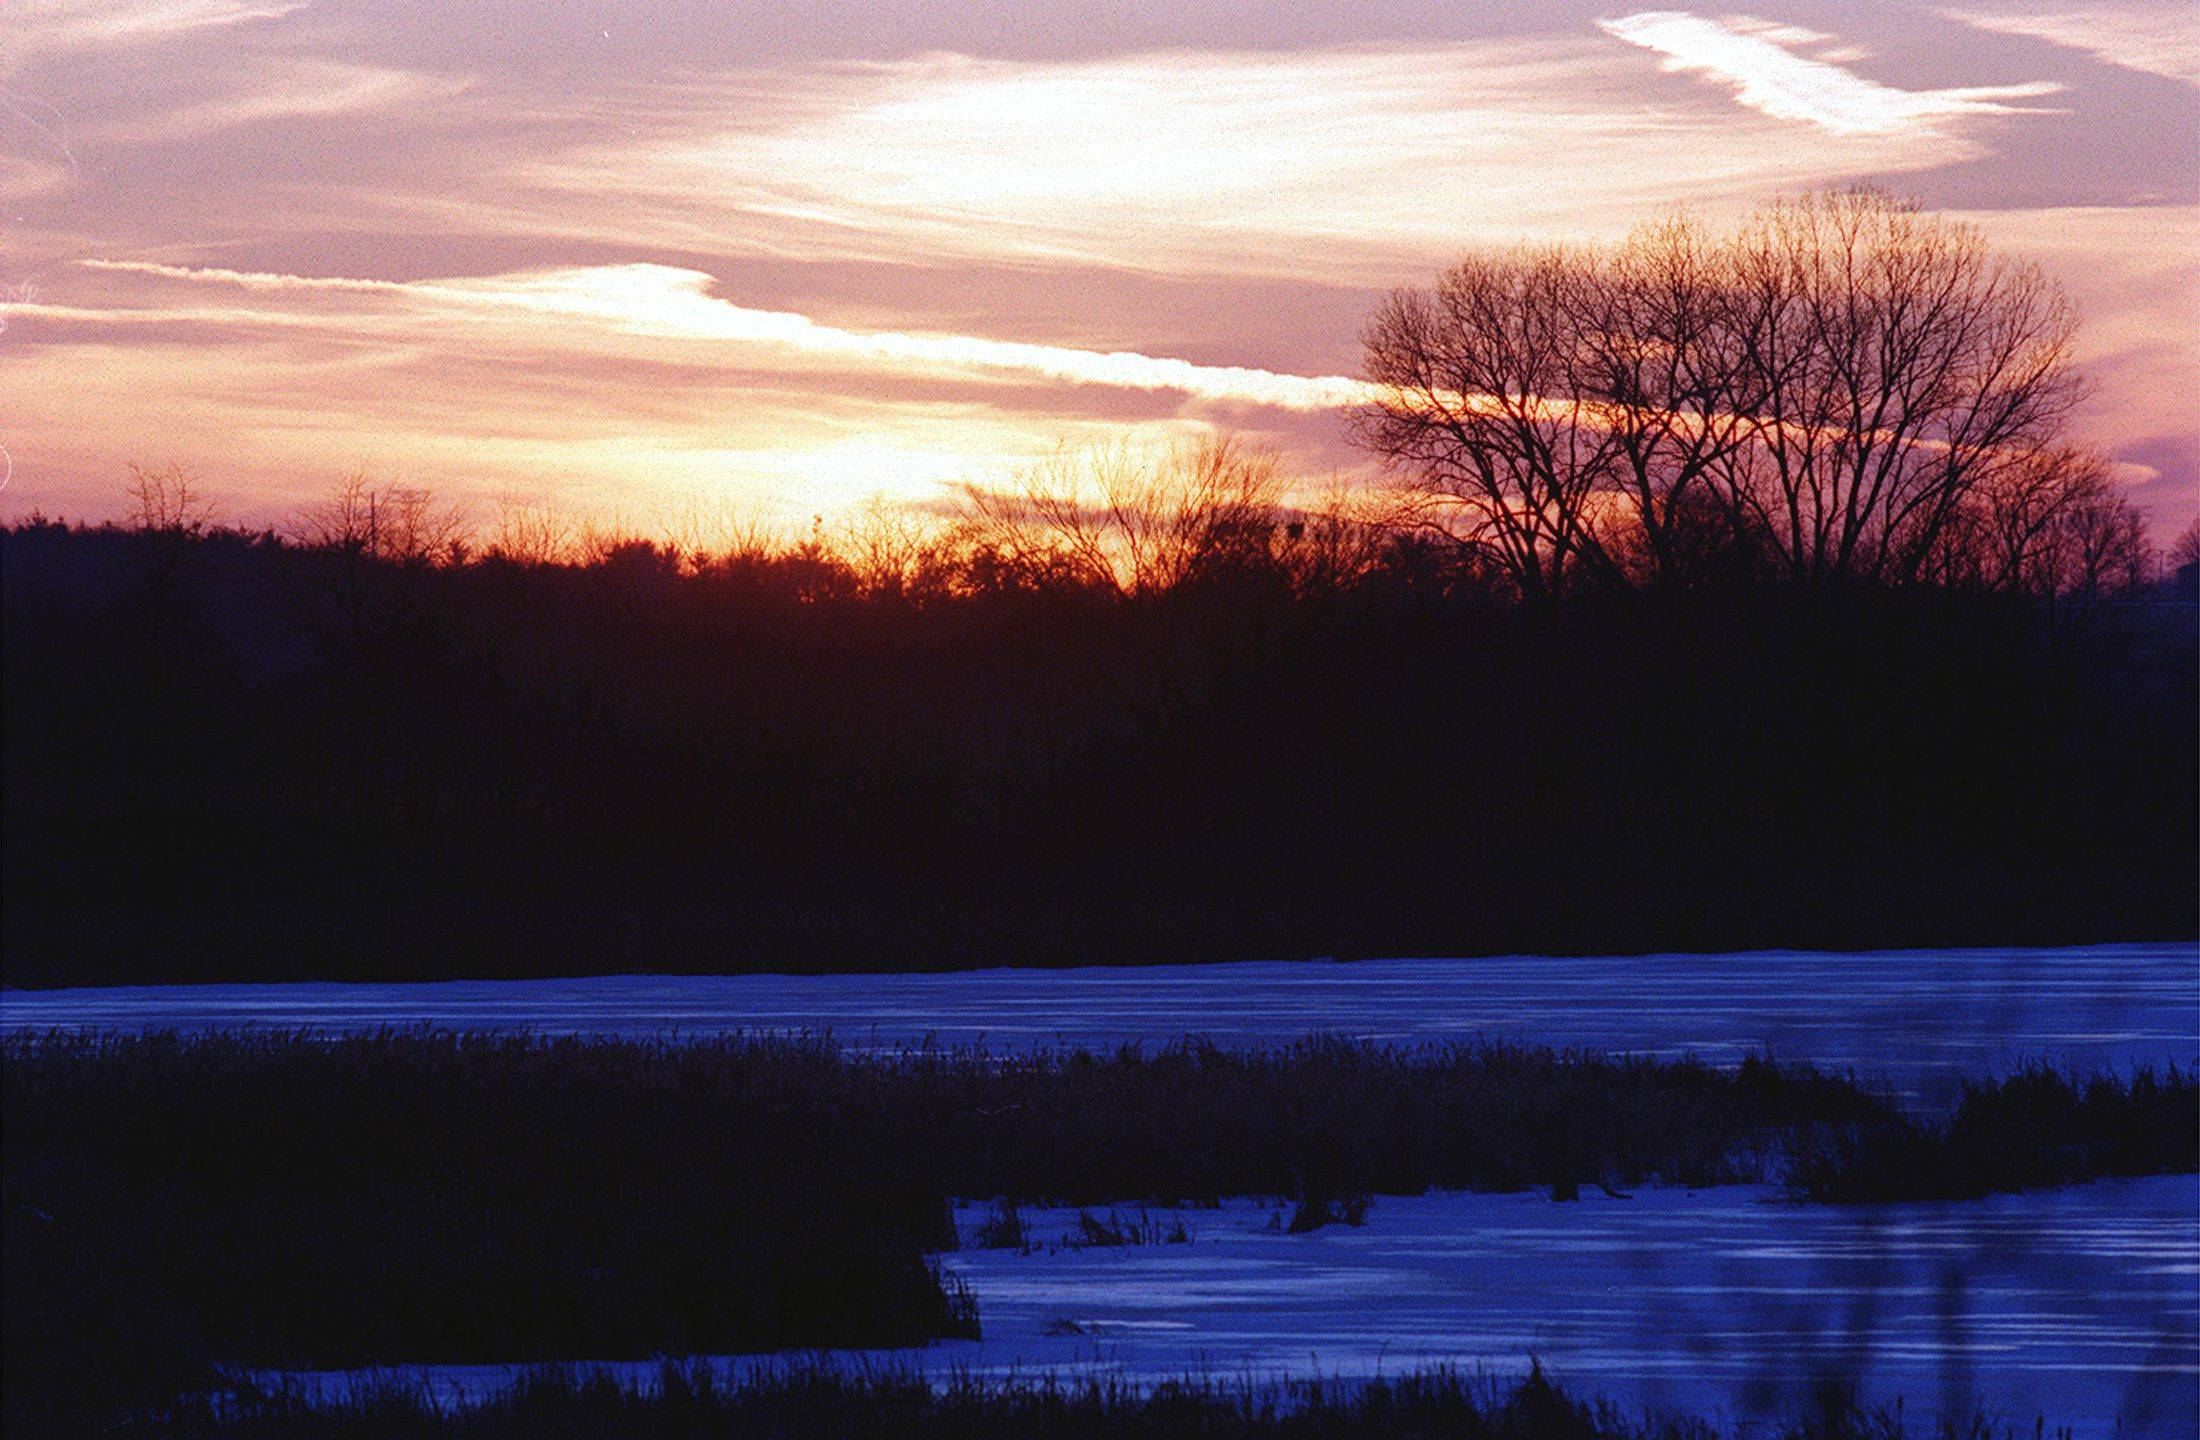 The sun slips beyond the horizon at Nelson Lake Marsh in Batavia, turning the sky from golden to pink and making the snowcovered marsh take on a purplish glow. Soon it will be the longest night of the year, the winter solstice.